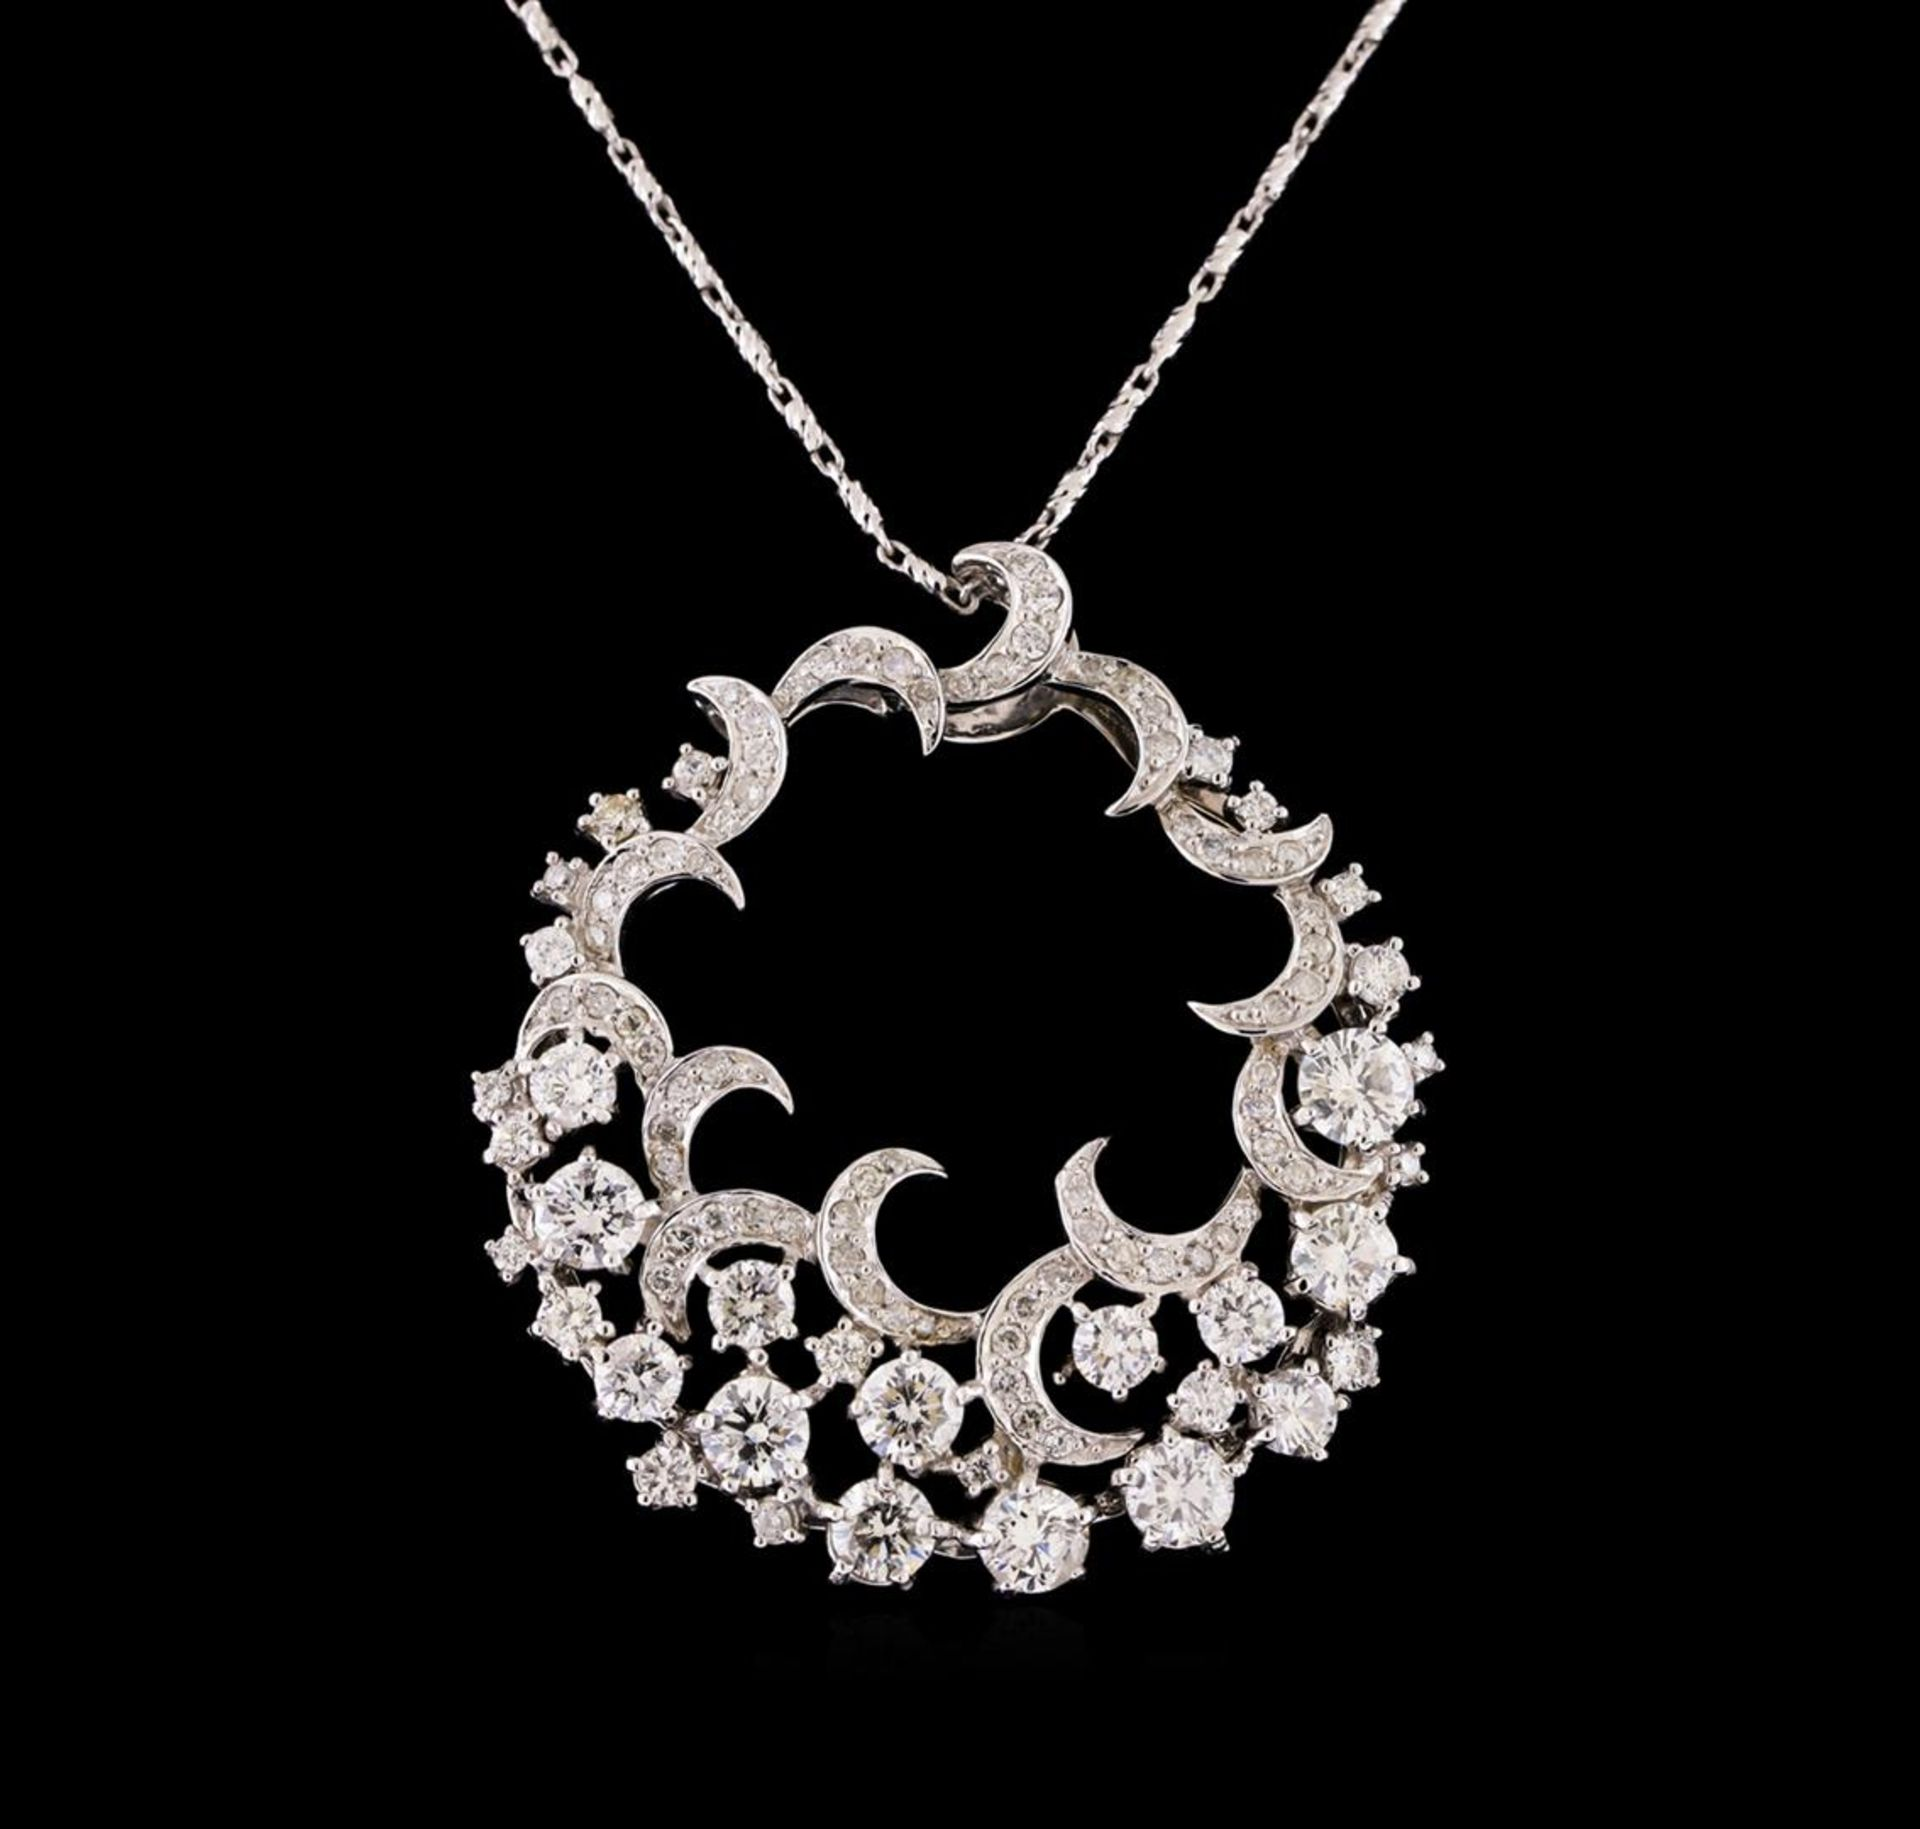 14KT White Gold 3.14 ctw Diamond Pendant With Chain - Image 2 of 3